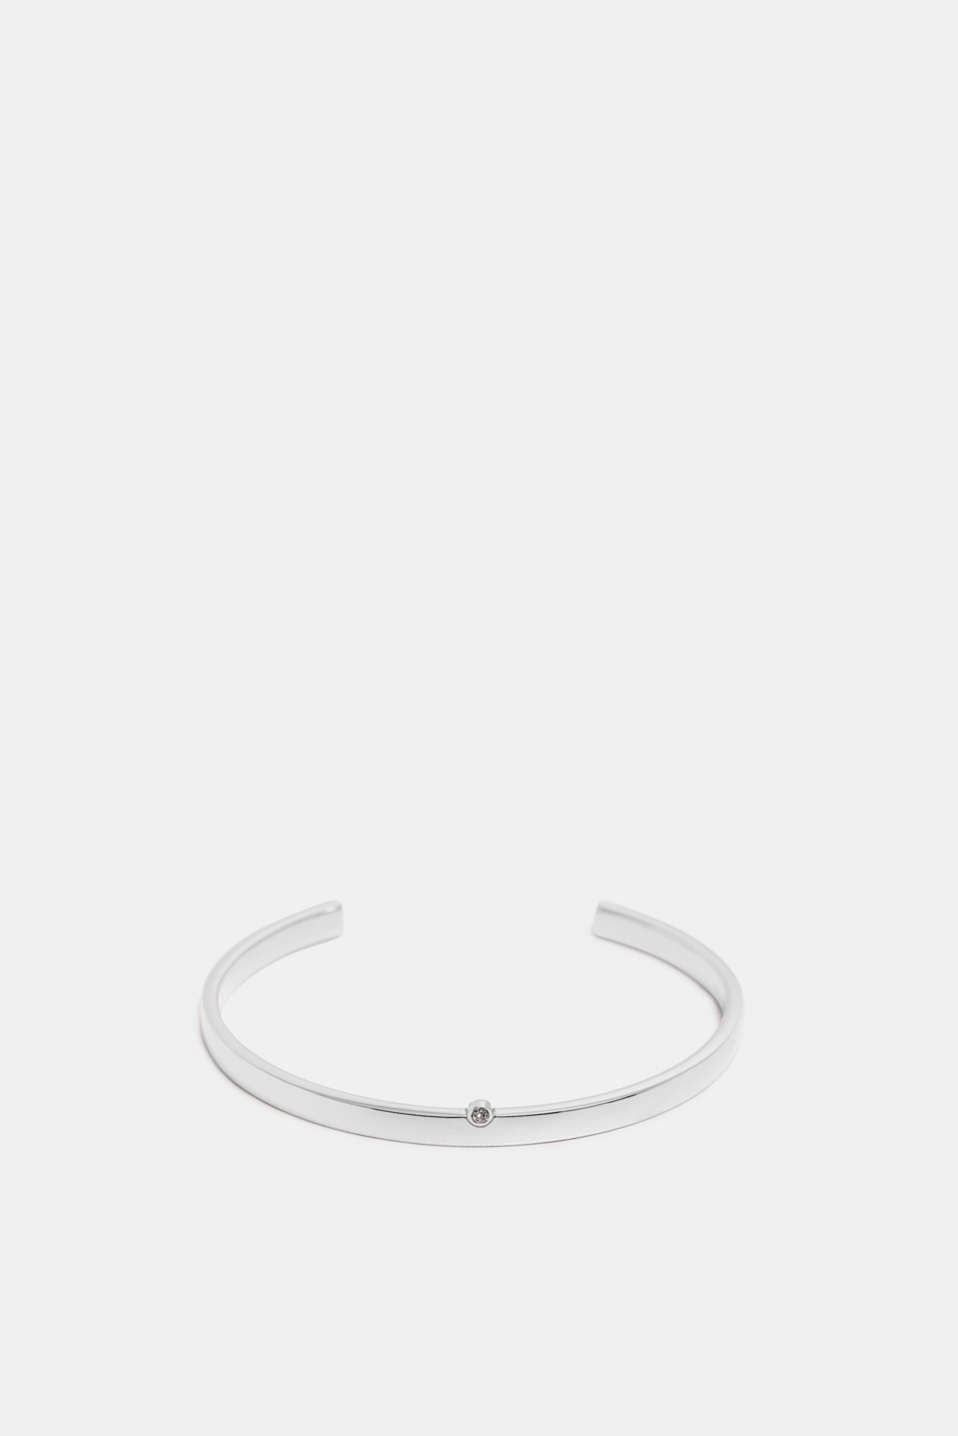 Esprit - Bangle with zirconia, made of stainless steel